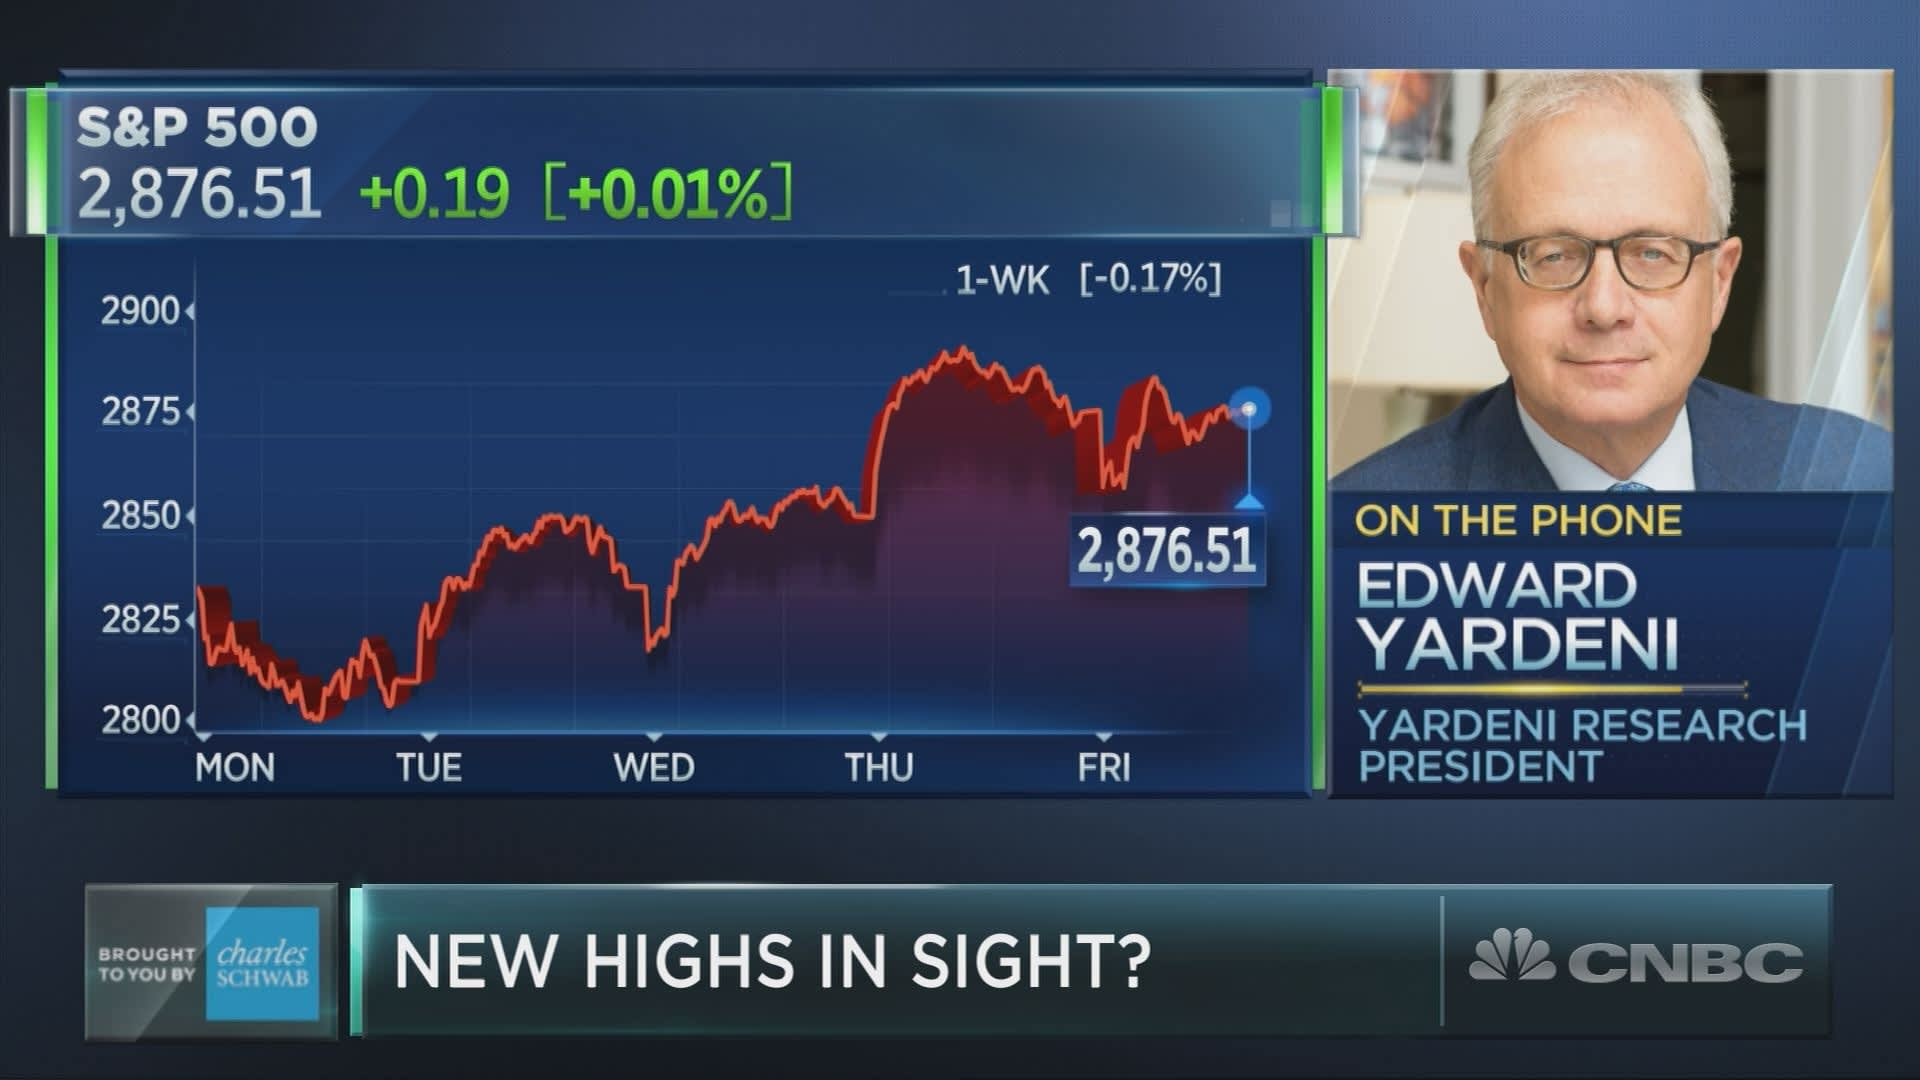 Market will return to all-time highs with help from a group hit by the trade war, Wall Street bull Ed Yardeni predicts